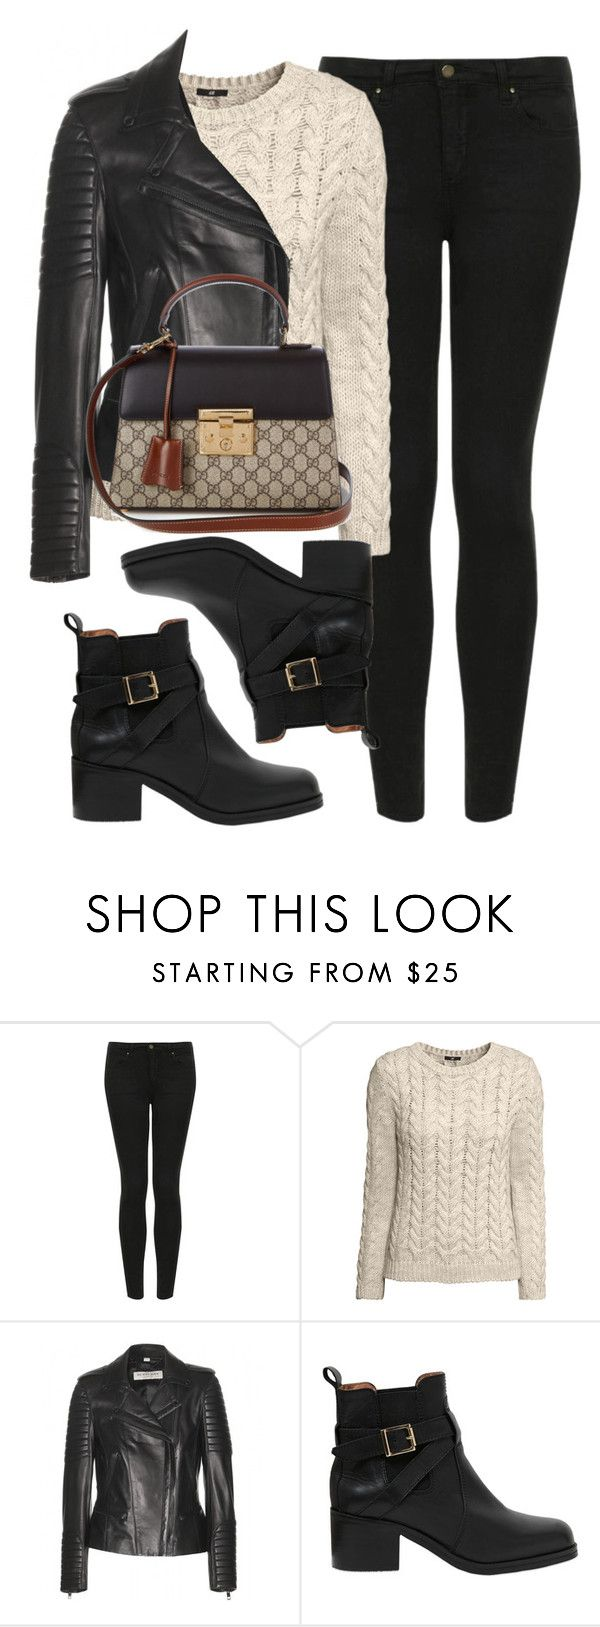 """Sin título #12014"" by vany-alvarado ❤ liked on Polyvore featuring Topshop, H&M, Burberry, Carvela Kurt Geiger and Gucci"